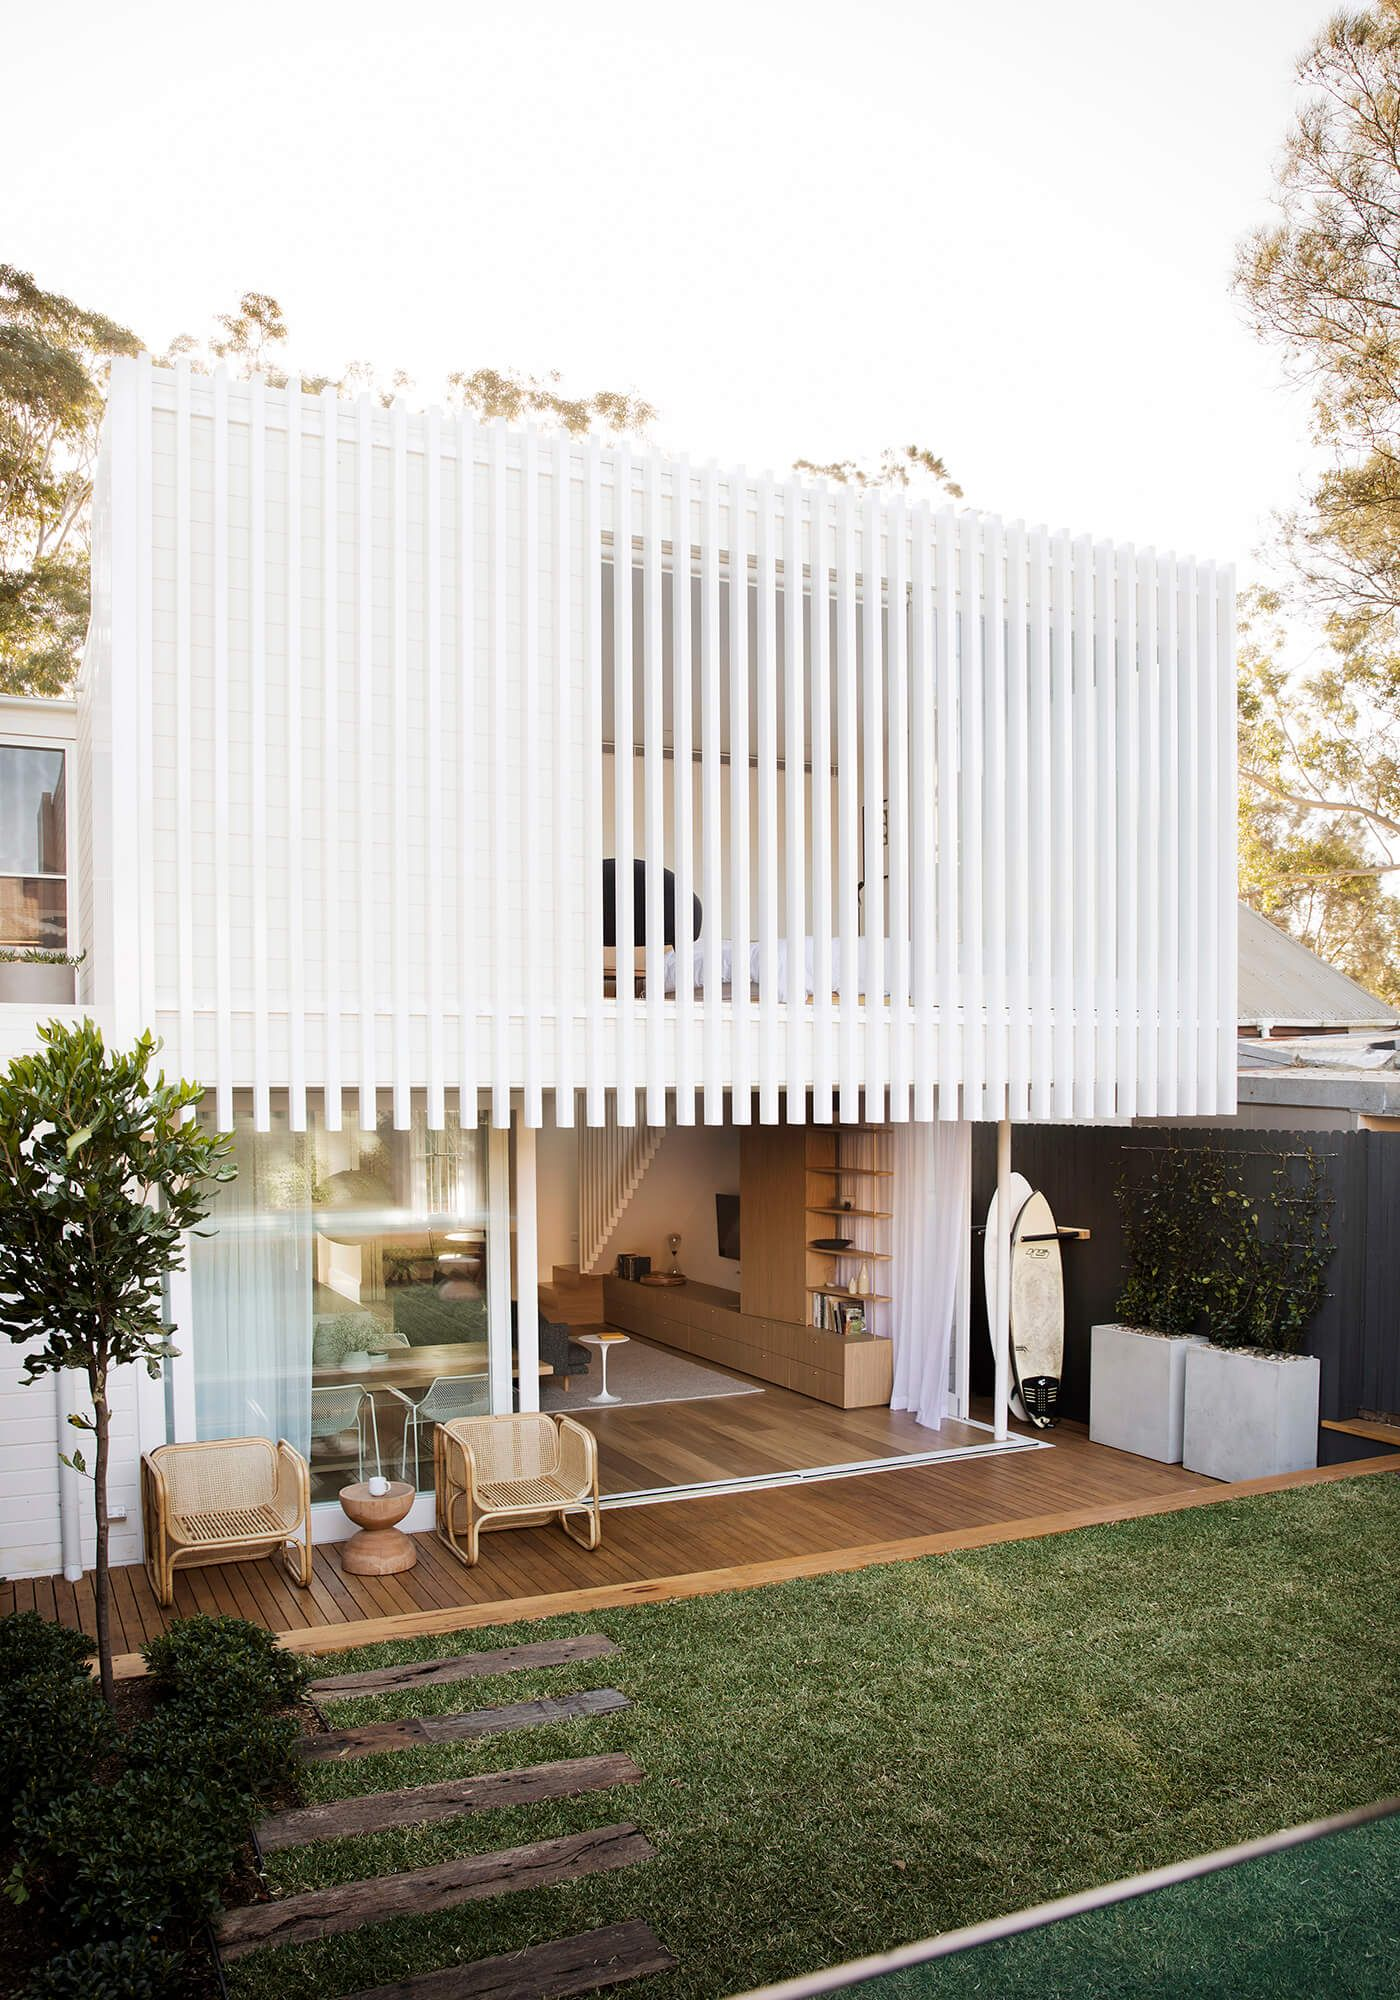 Workers House by Clayton Orszaczky Architects - Sydney Design Gallery - The Local Project